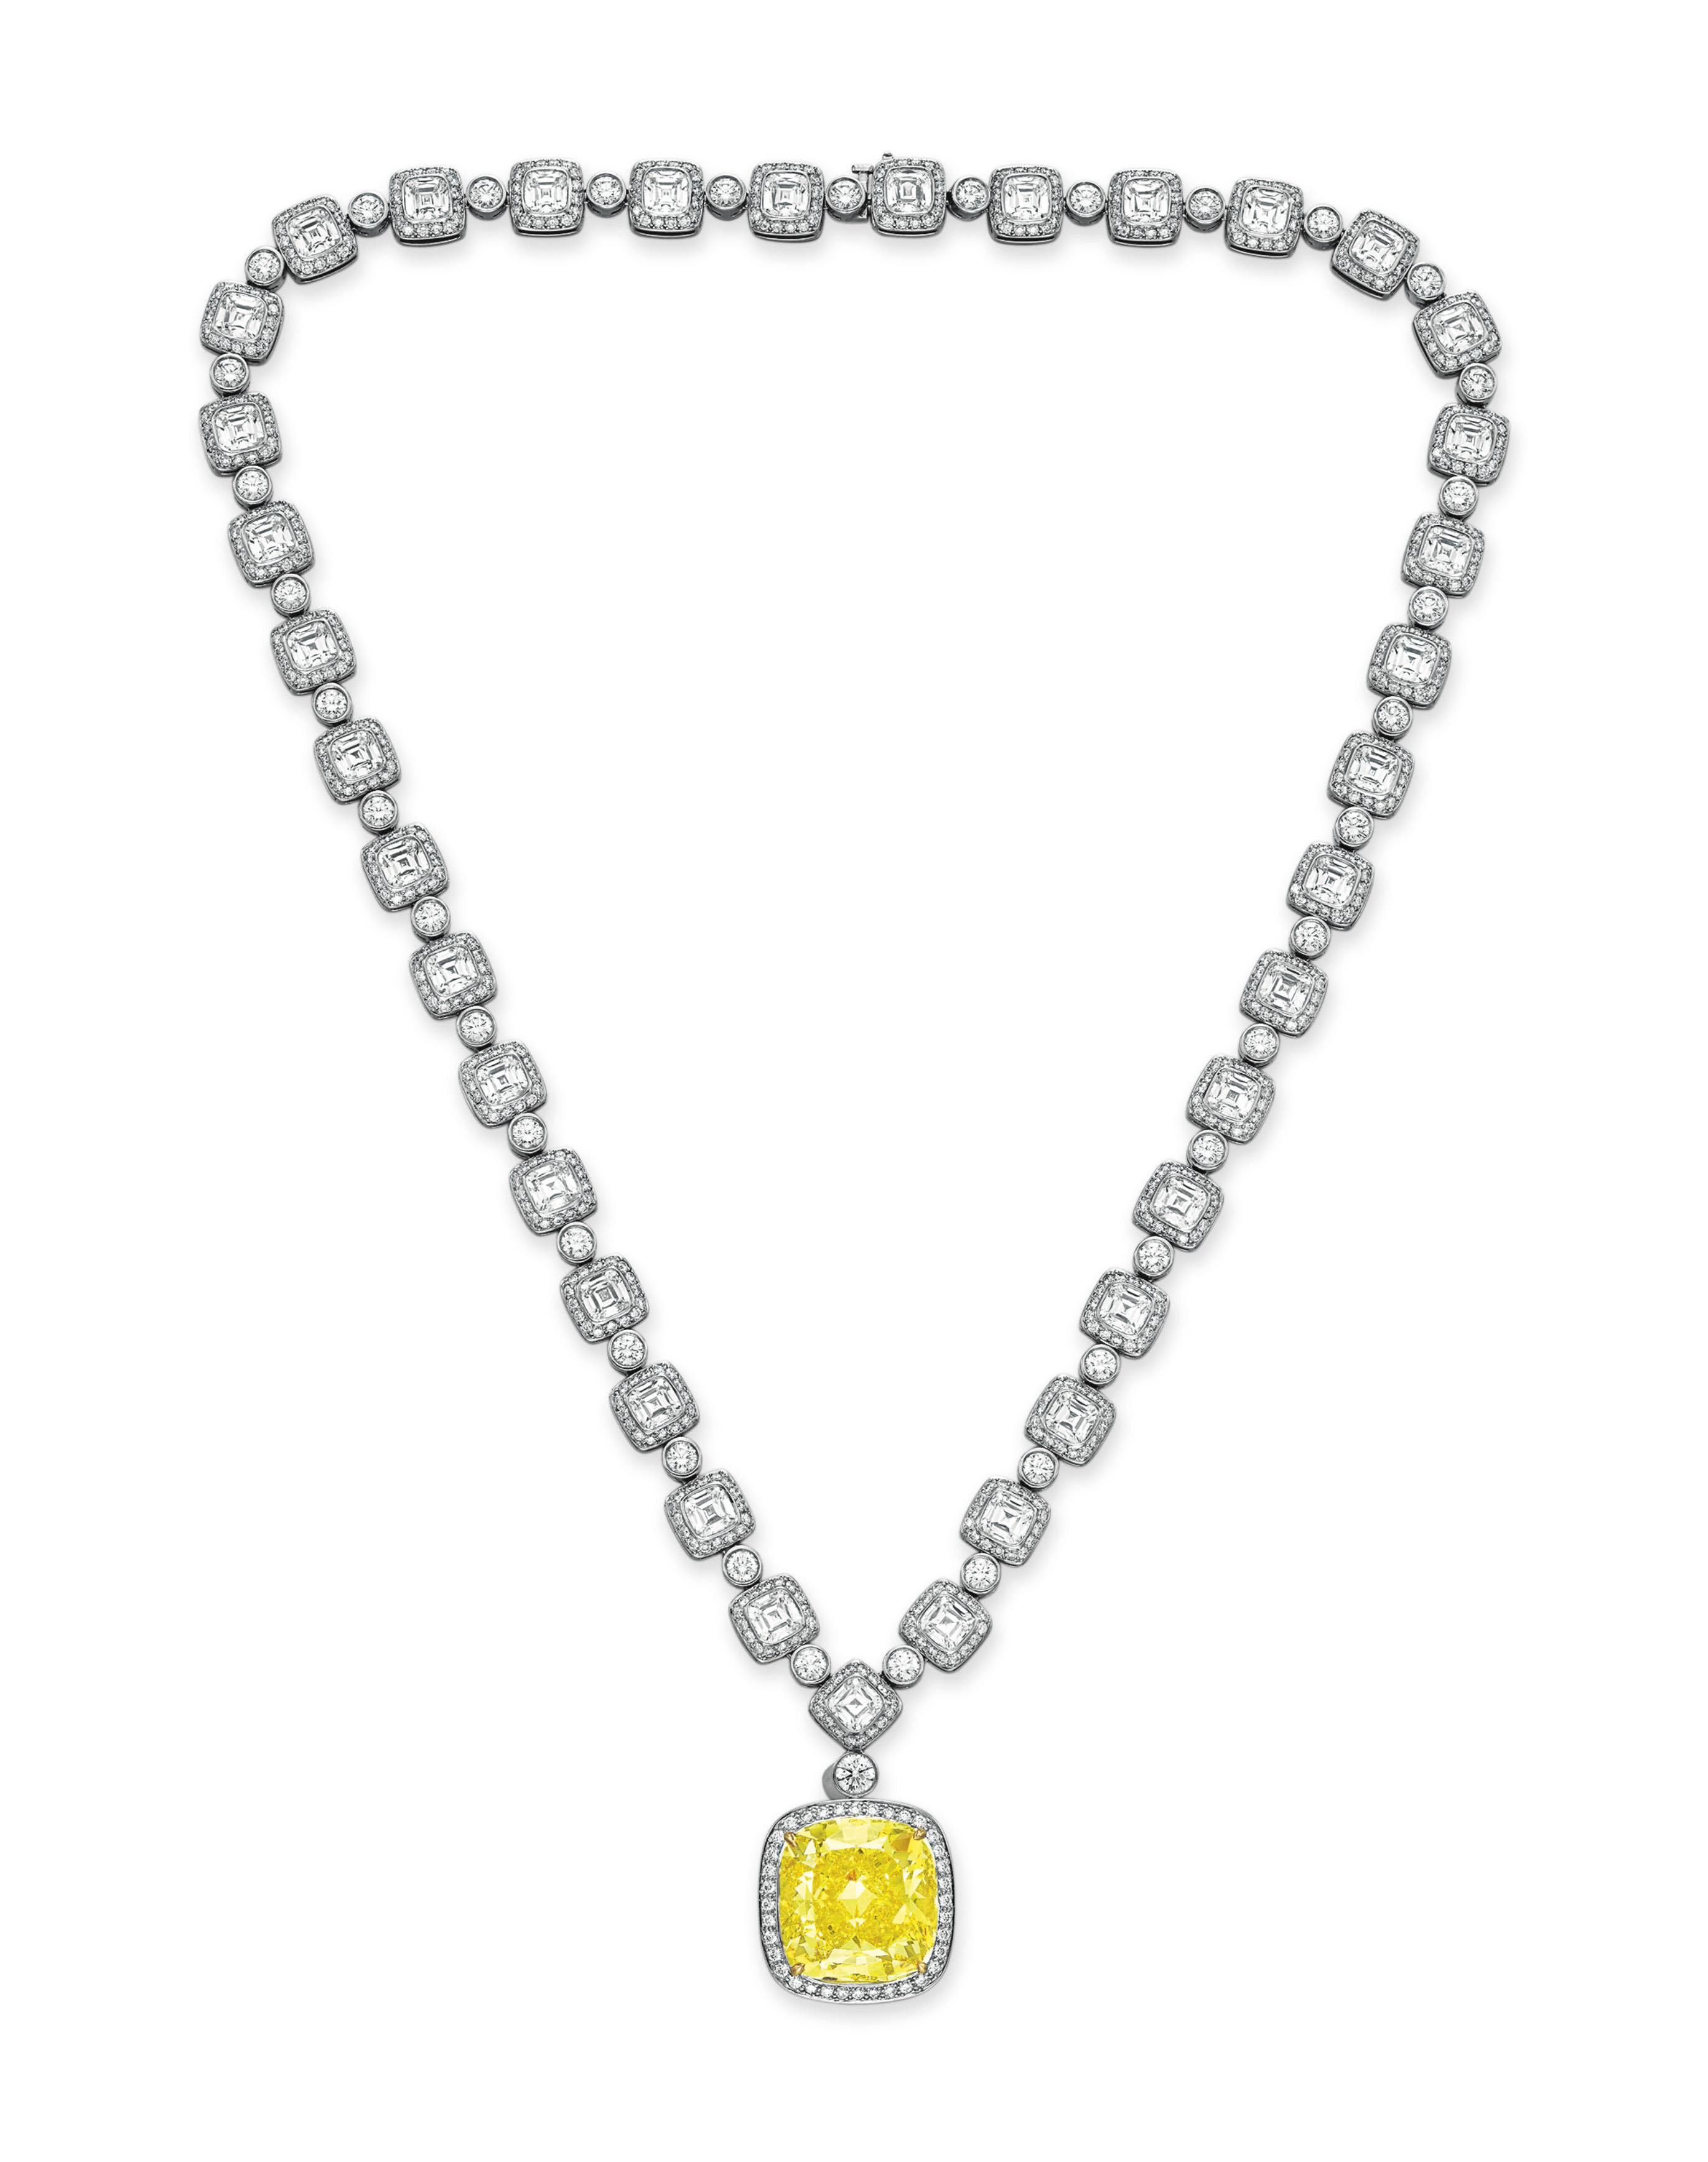 AN IMPORTANT COLORED DIAMOND AND DIAMOND PENDANT NECKLACE, BY TIFFANY & CO.